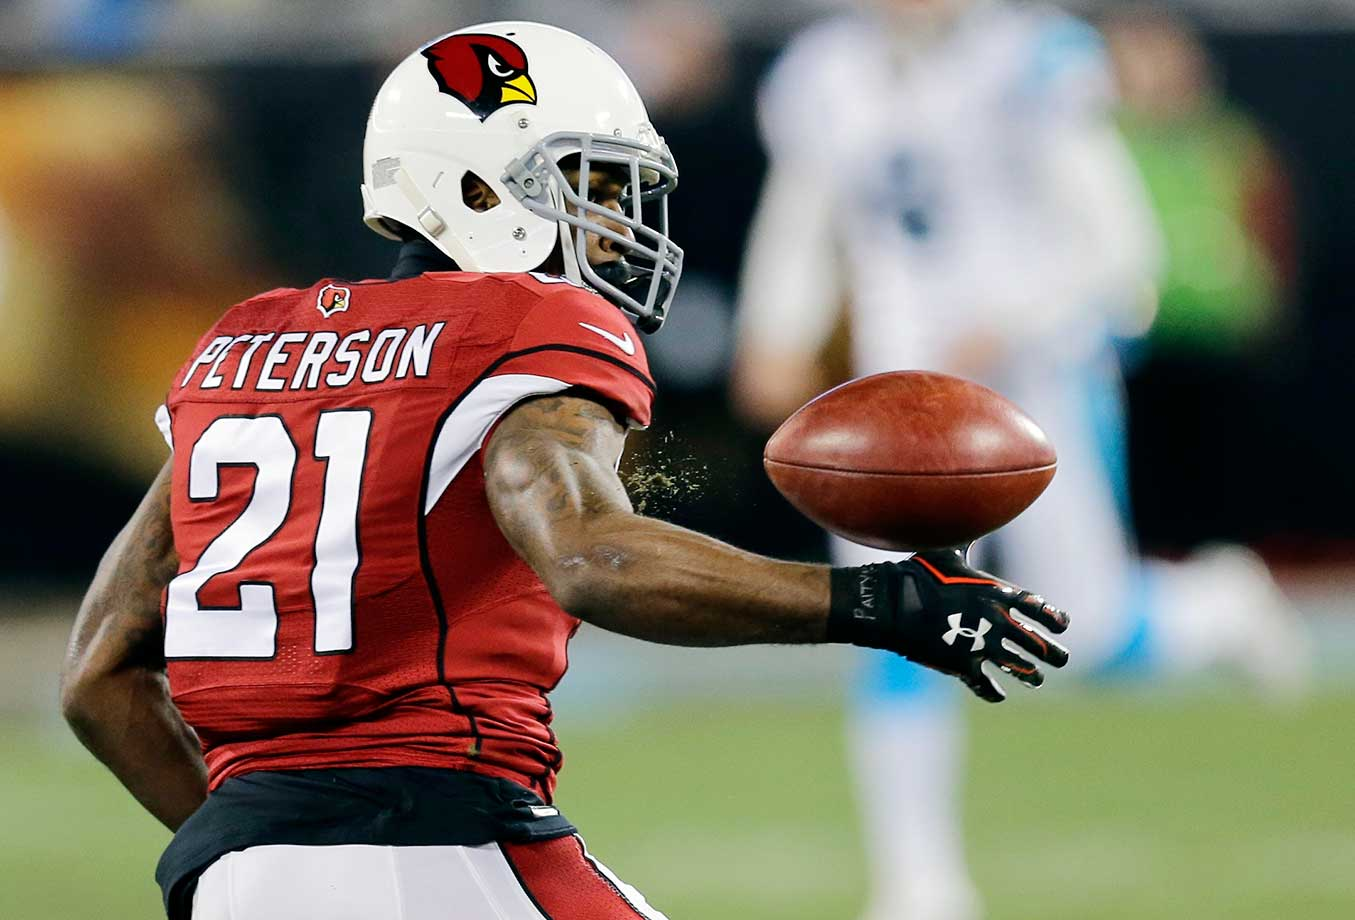 Patrick Peterson mishandled this punt and Carolina recovered the ball.